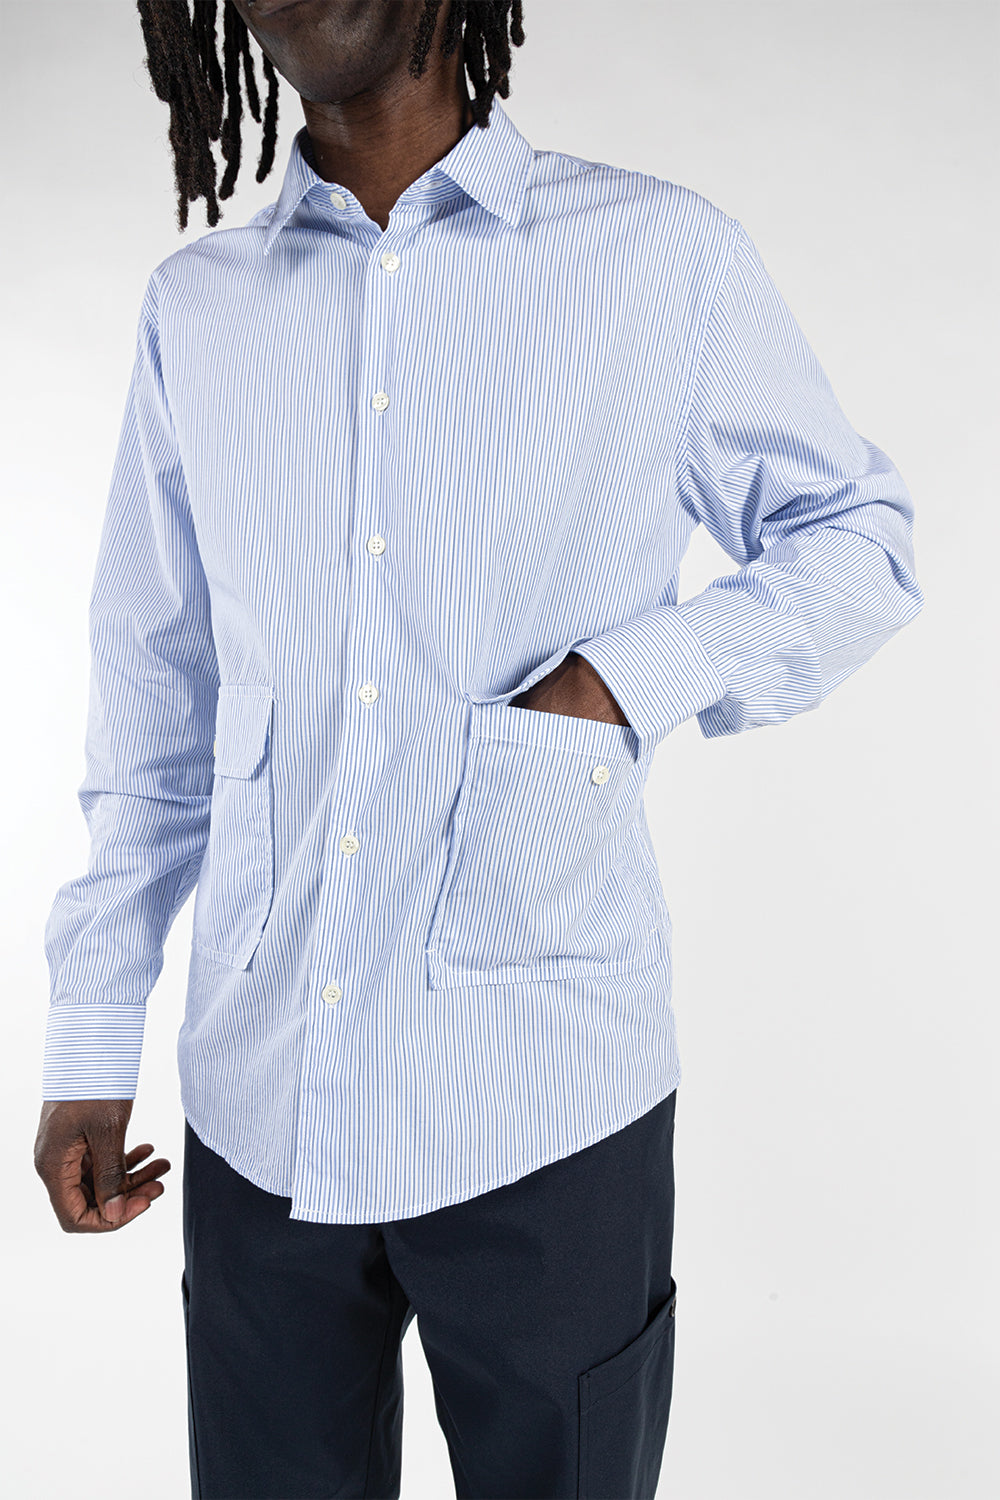 soulland-niel-shirt-white-blue-stripes